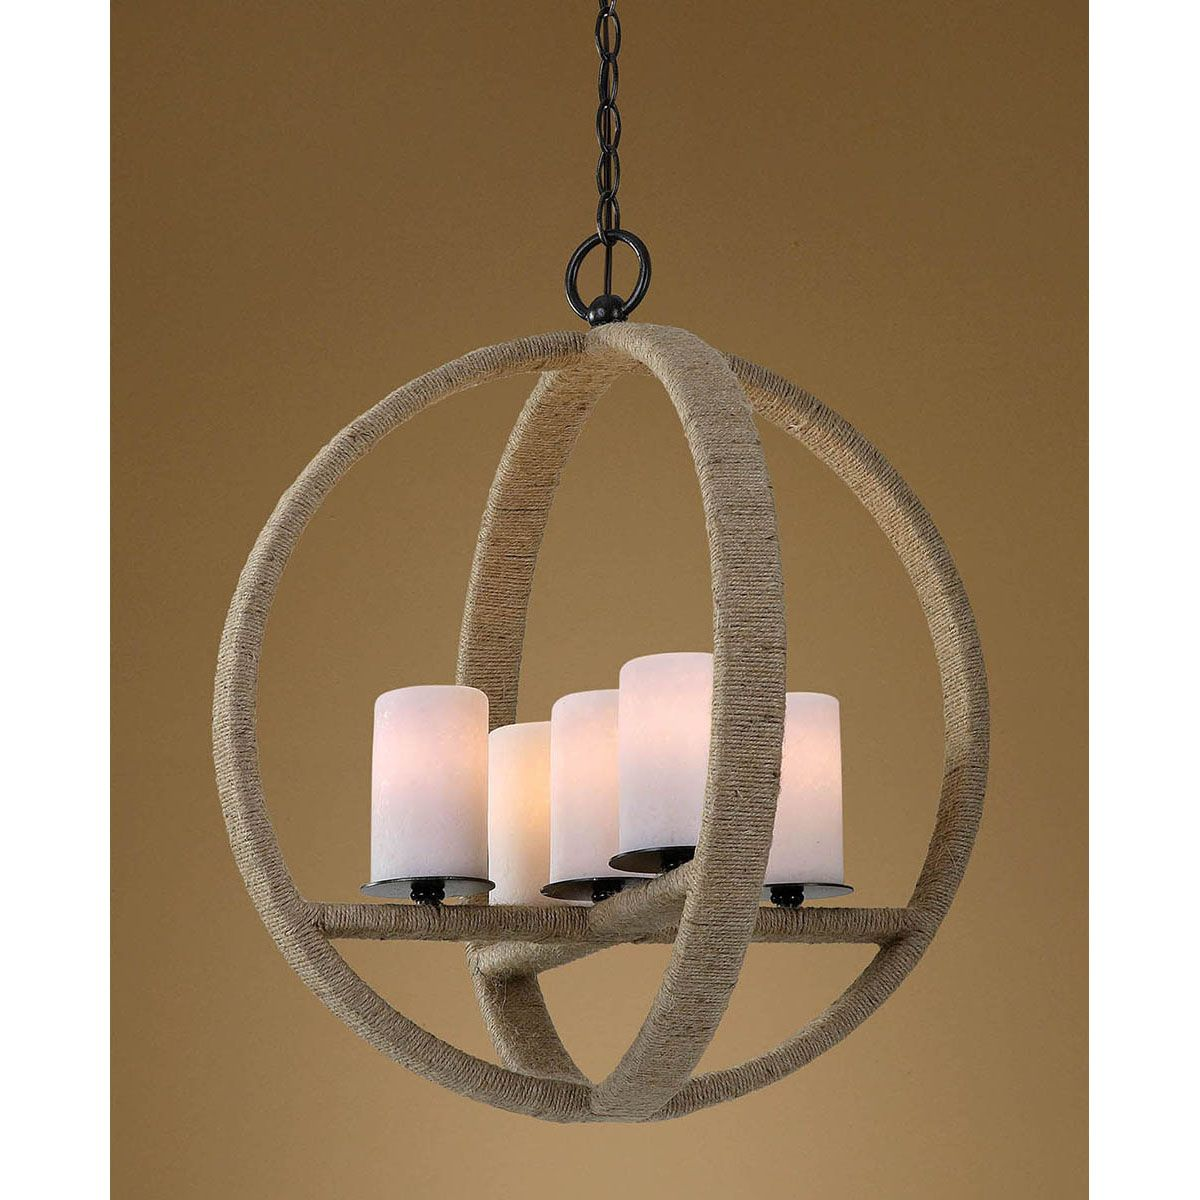 Uttermost Gironico Round 5 Light Pendant 21997